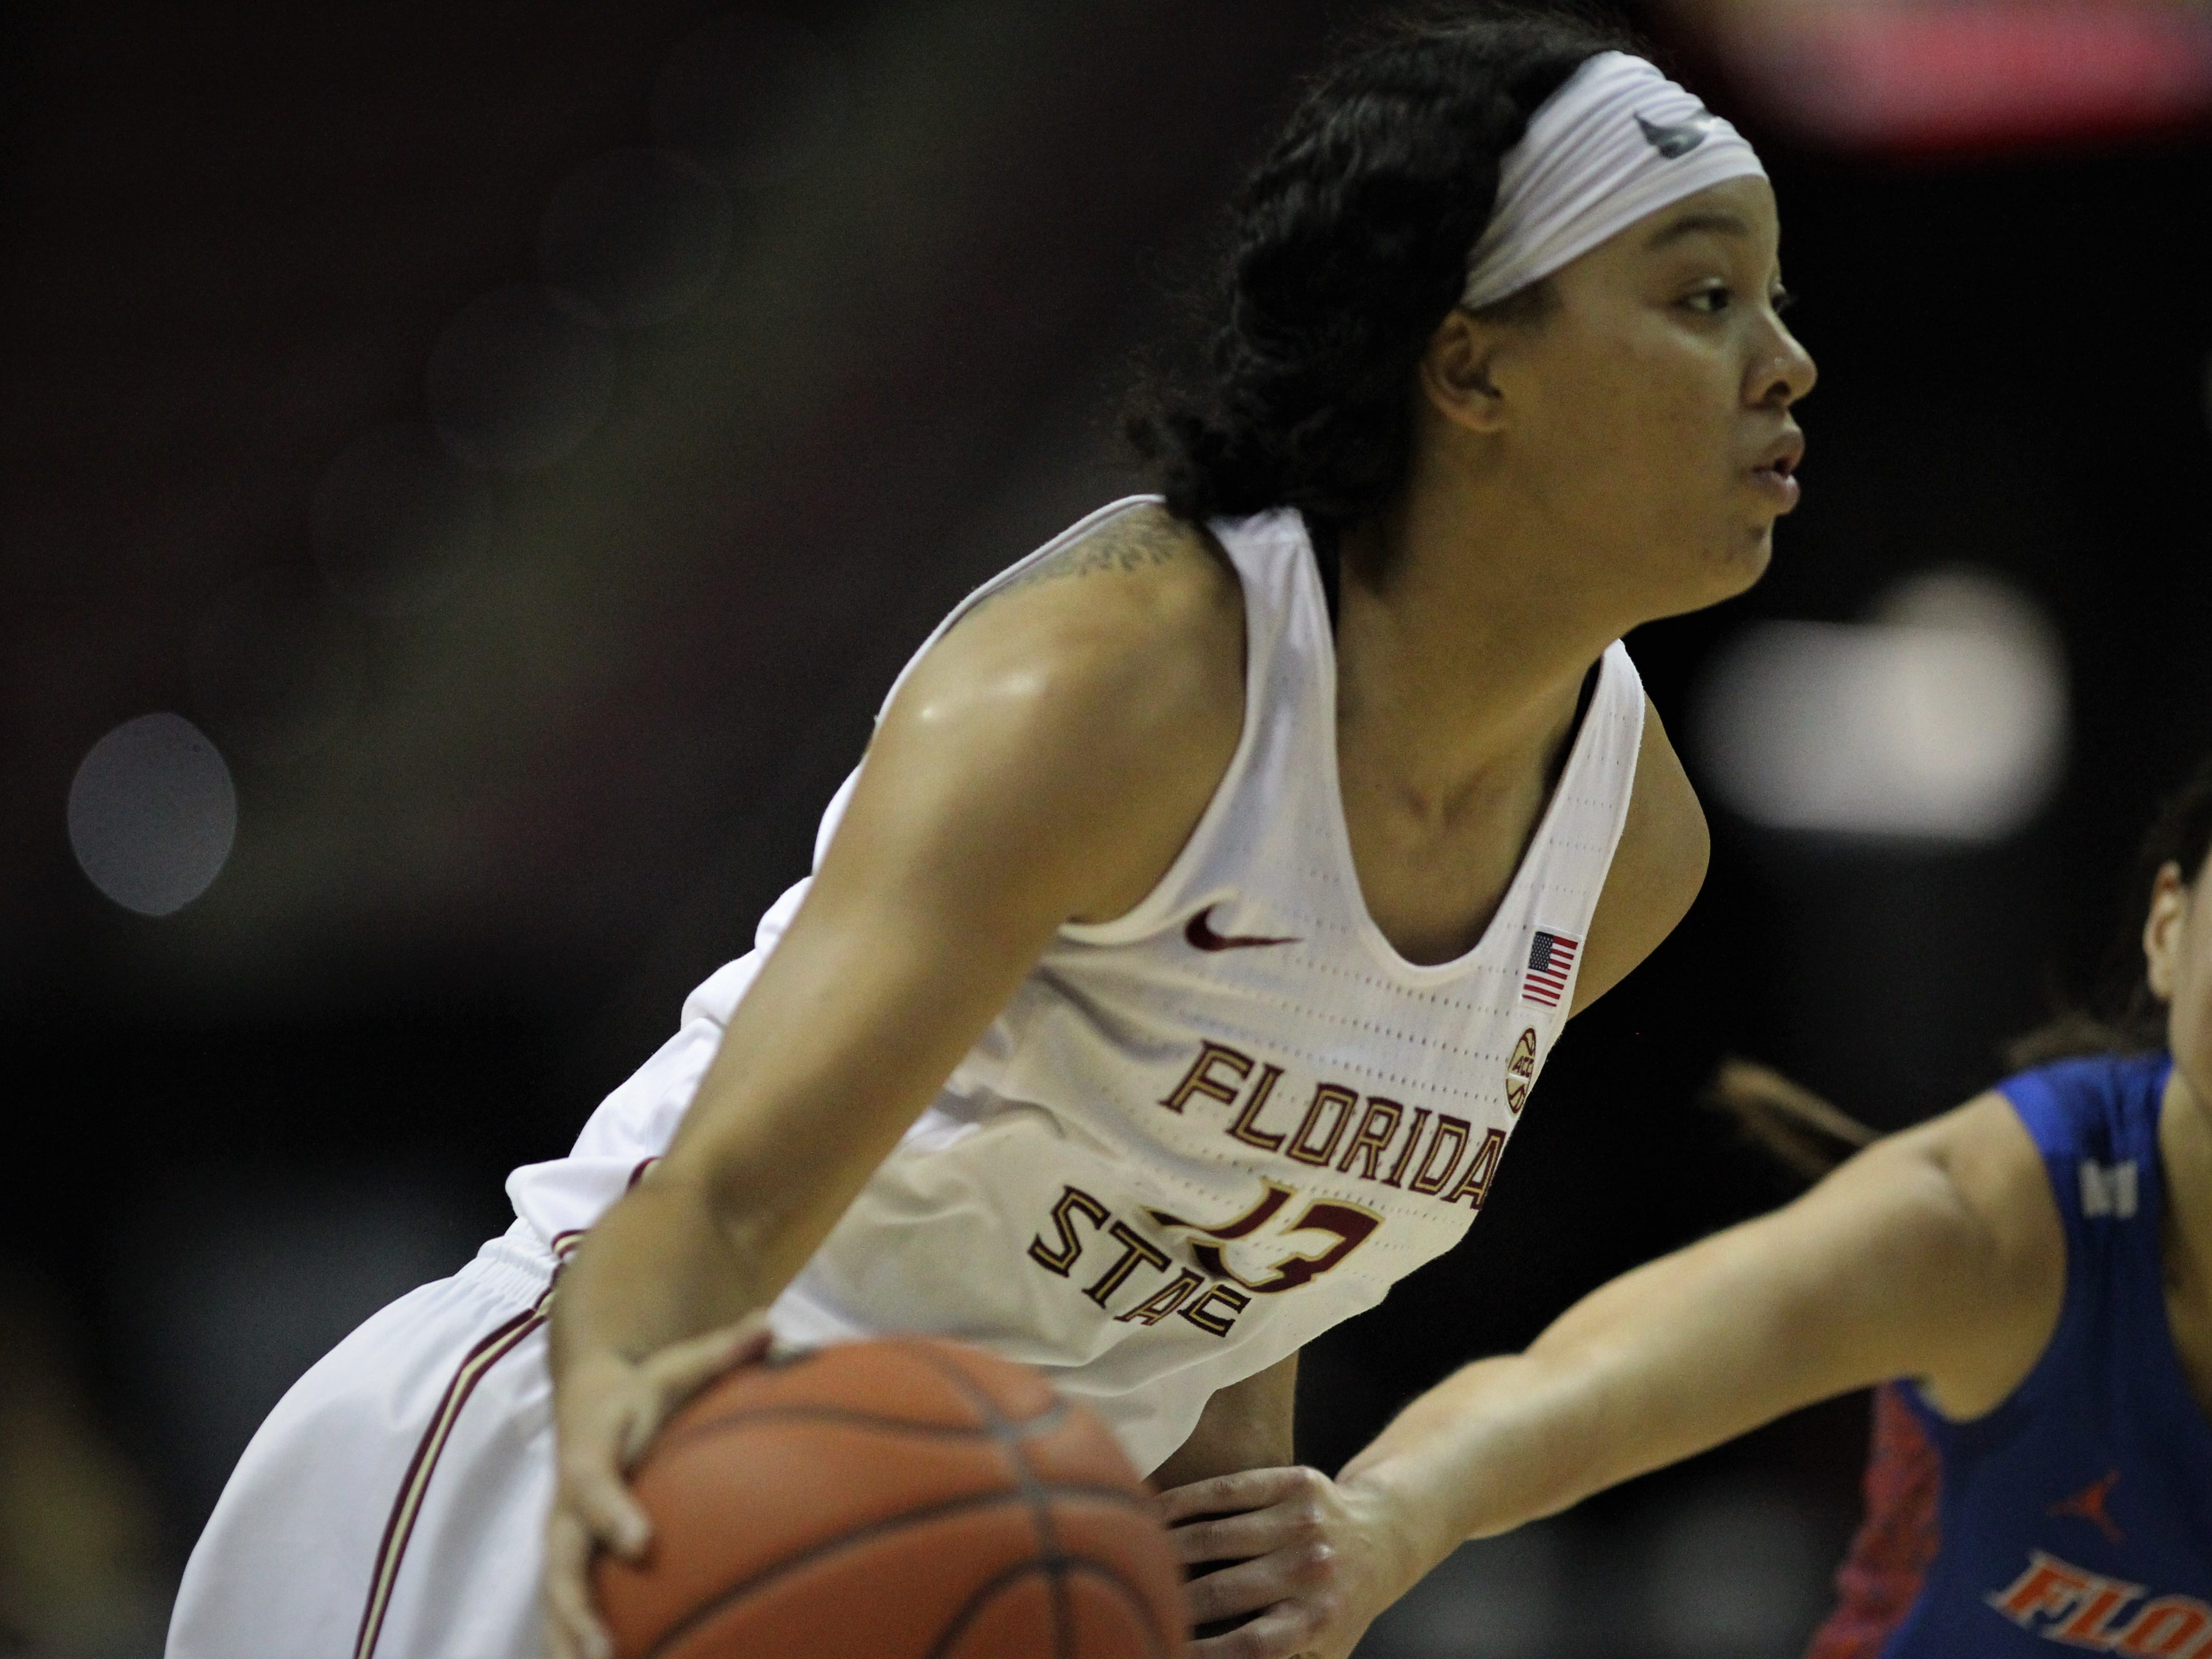 Florida State's Nausia Woolfolk drives to the basket during the first half of the Seminoles' game against Florida at the Tucker Civic Center on Nov. 11, 2018.